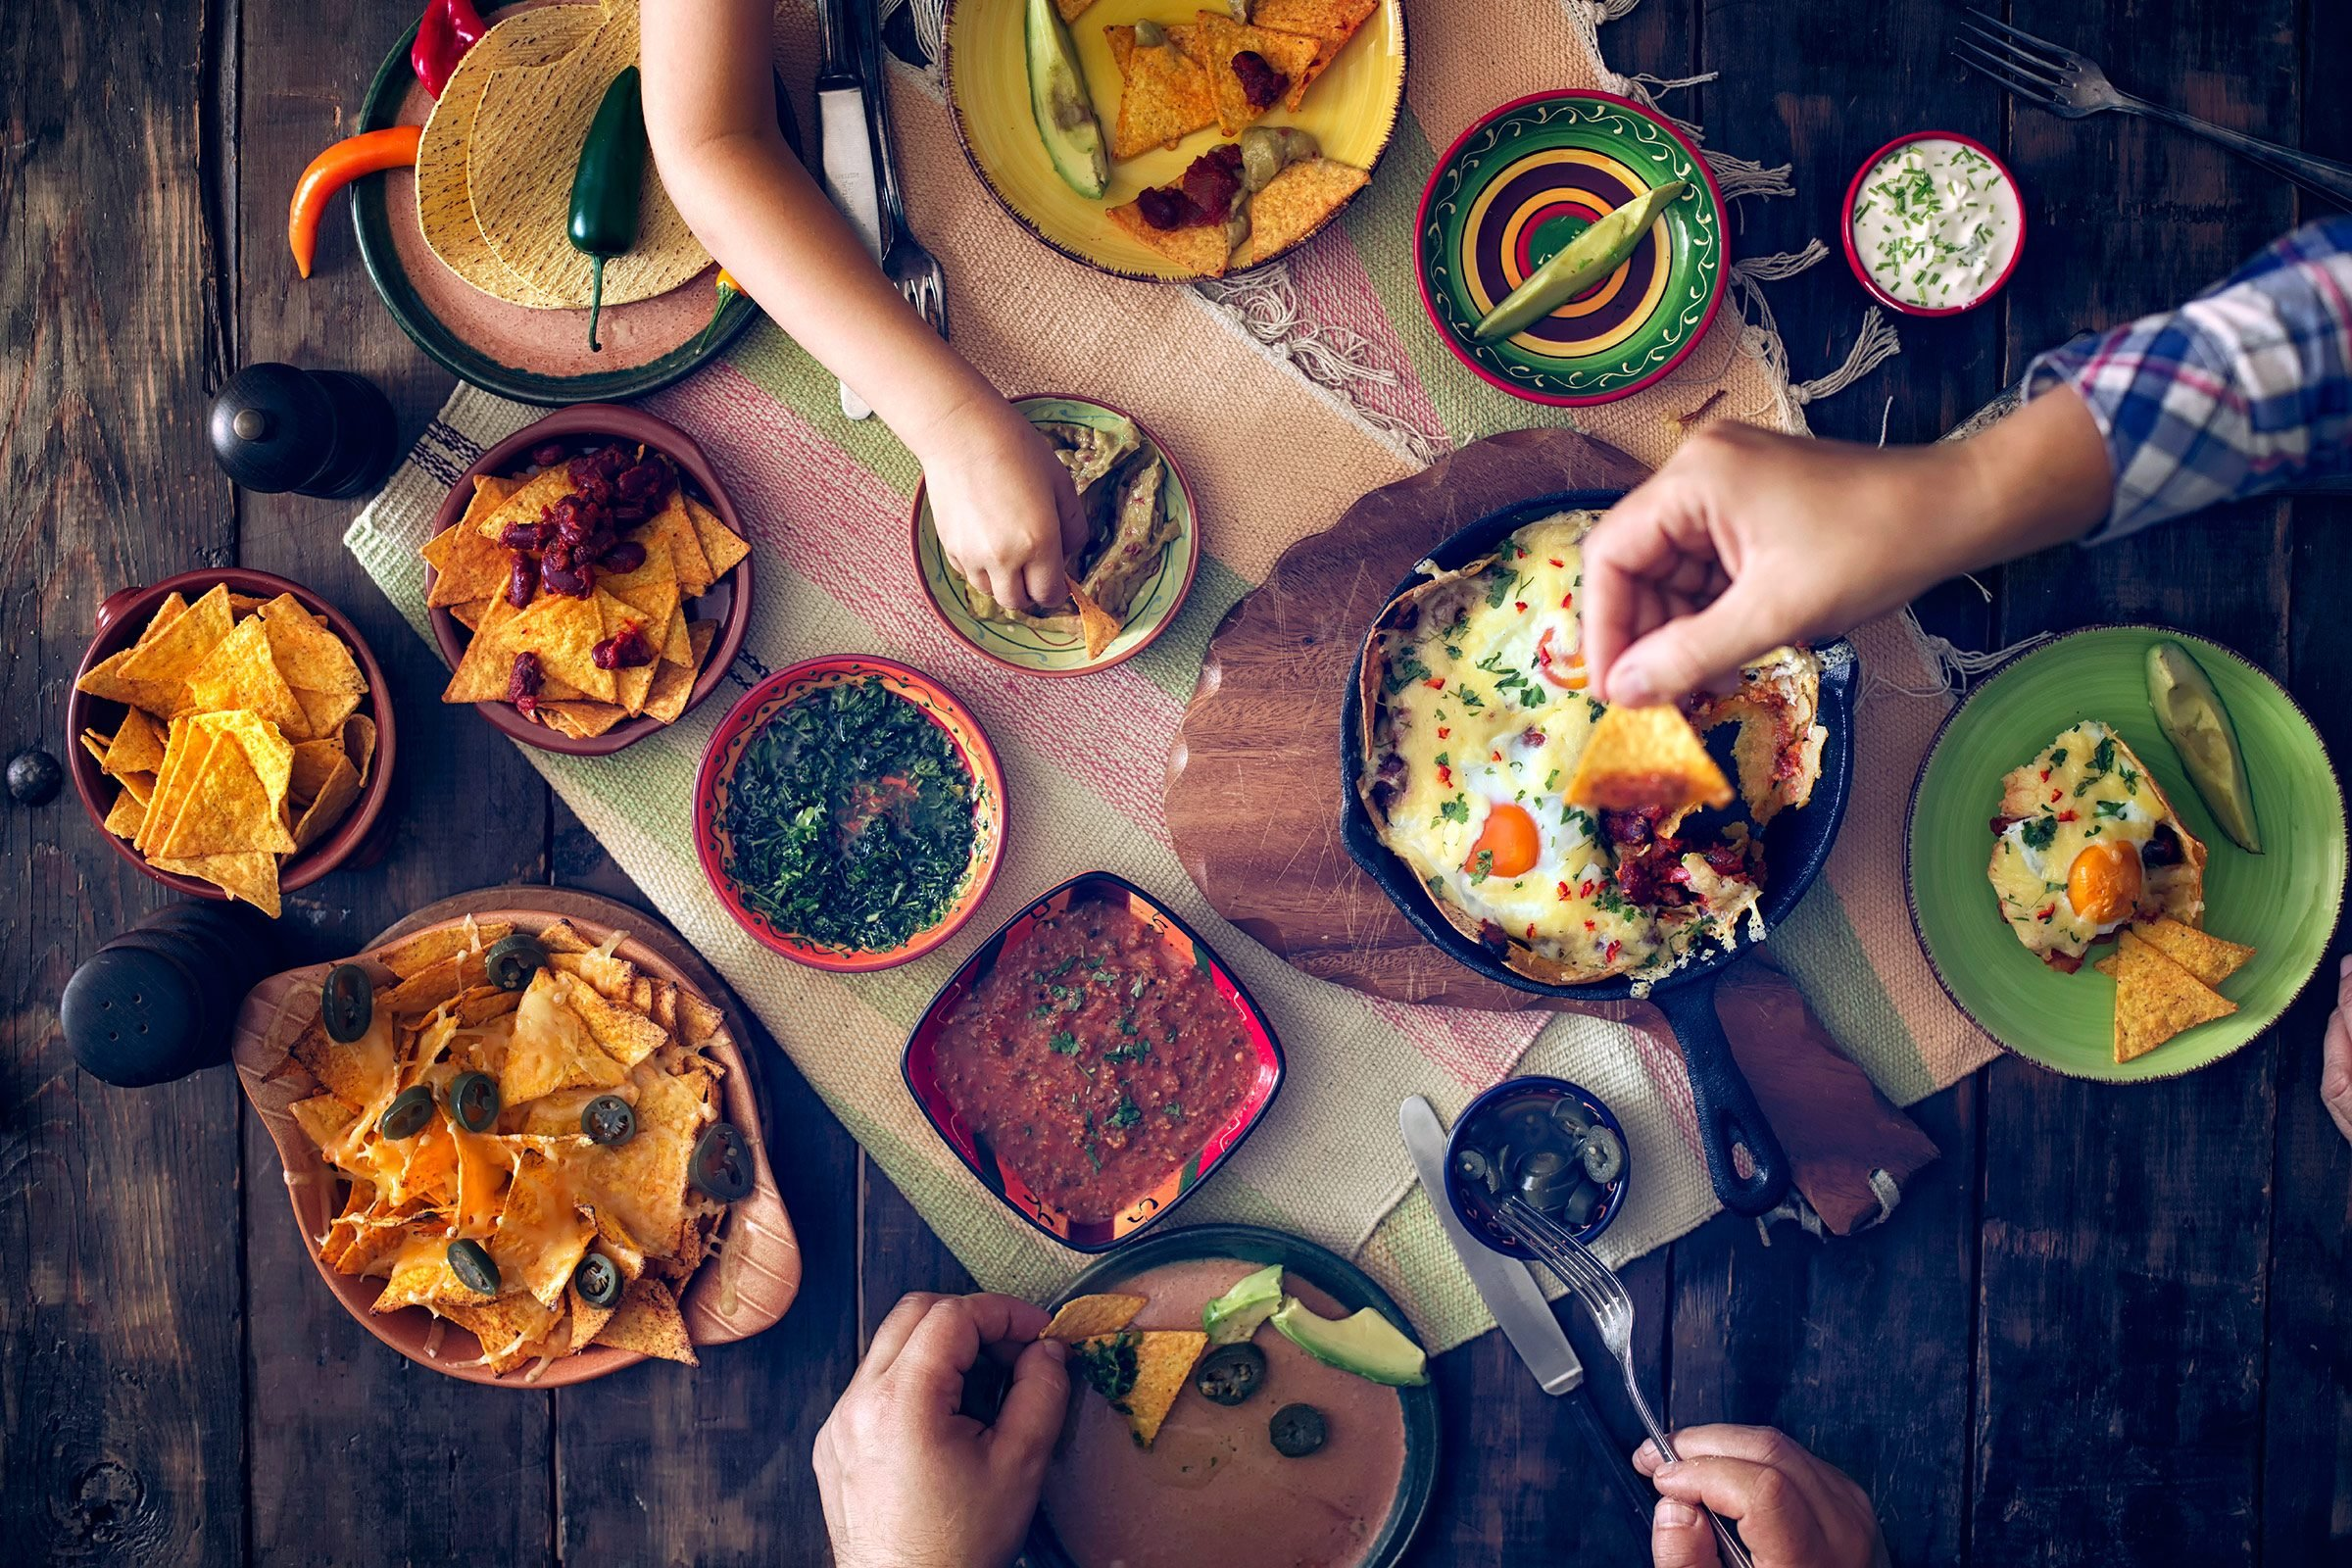 Mexico: Make the midday meal the biggest